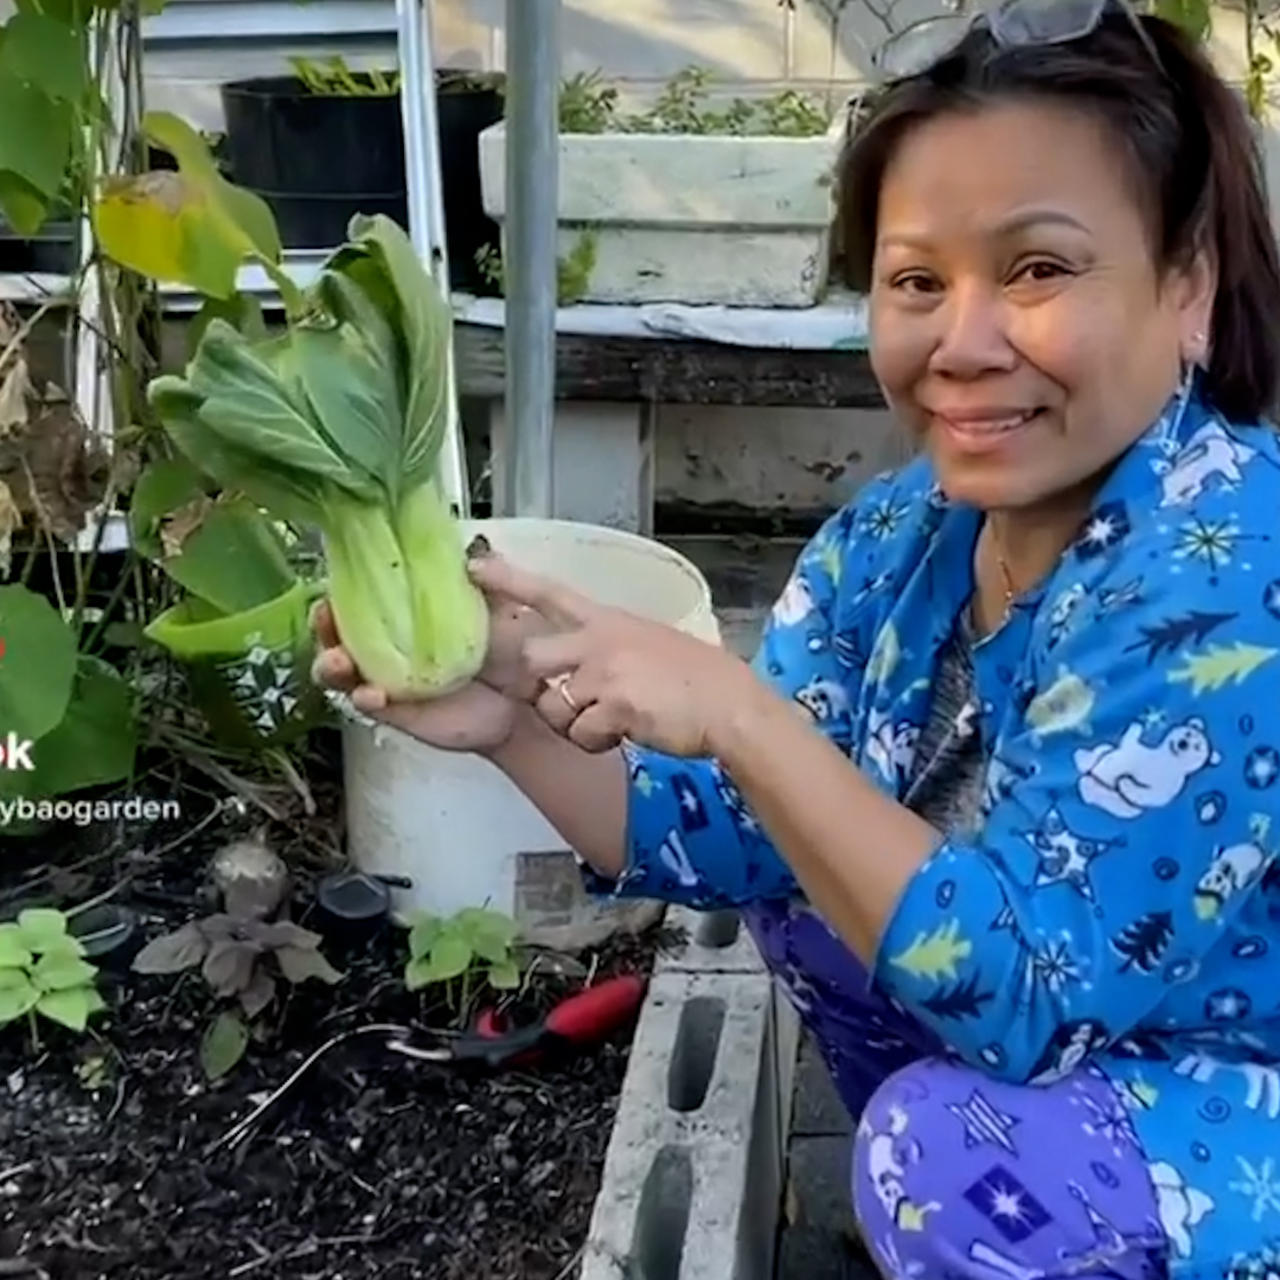 Mama Judy shares tips on how to regrow store-bought vegetables